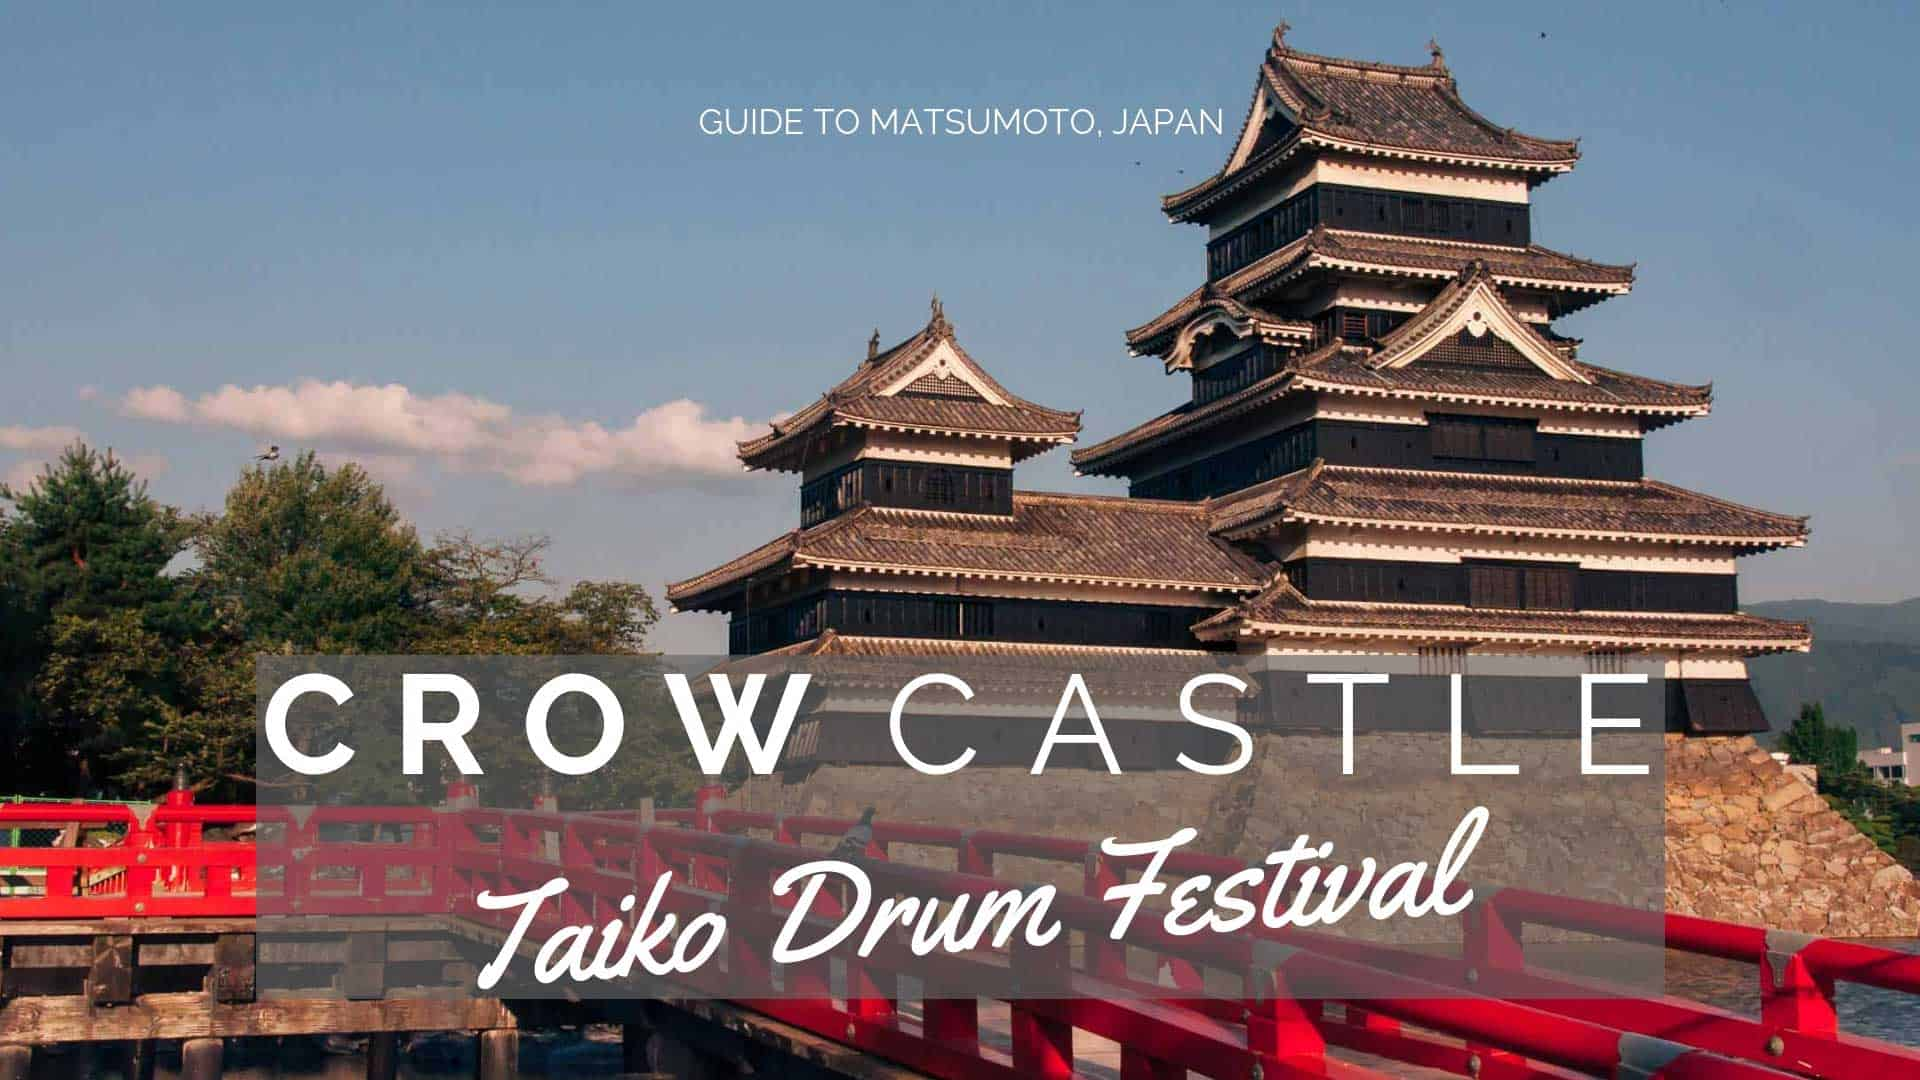 Travel guide to Matsumoto Japan